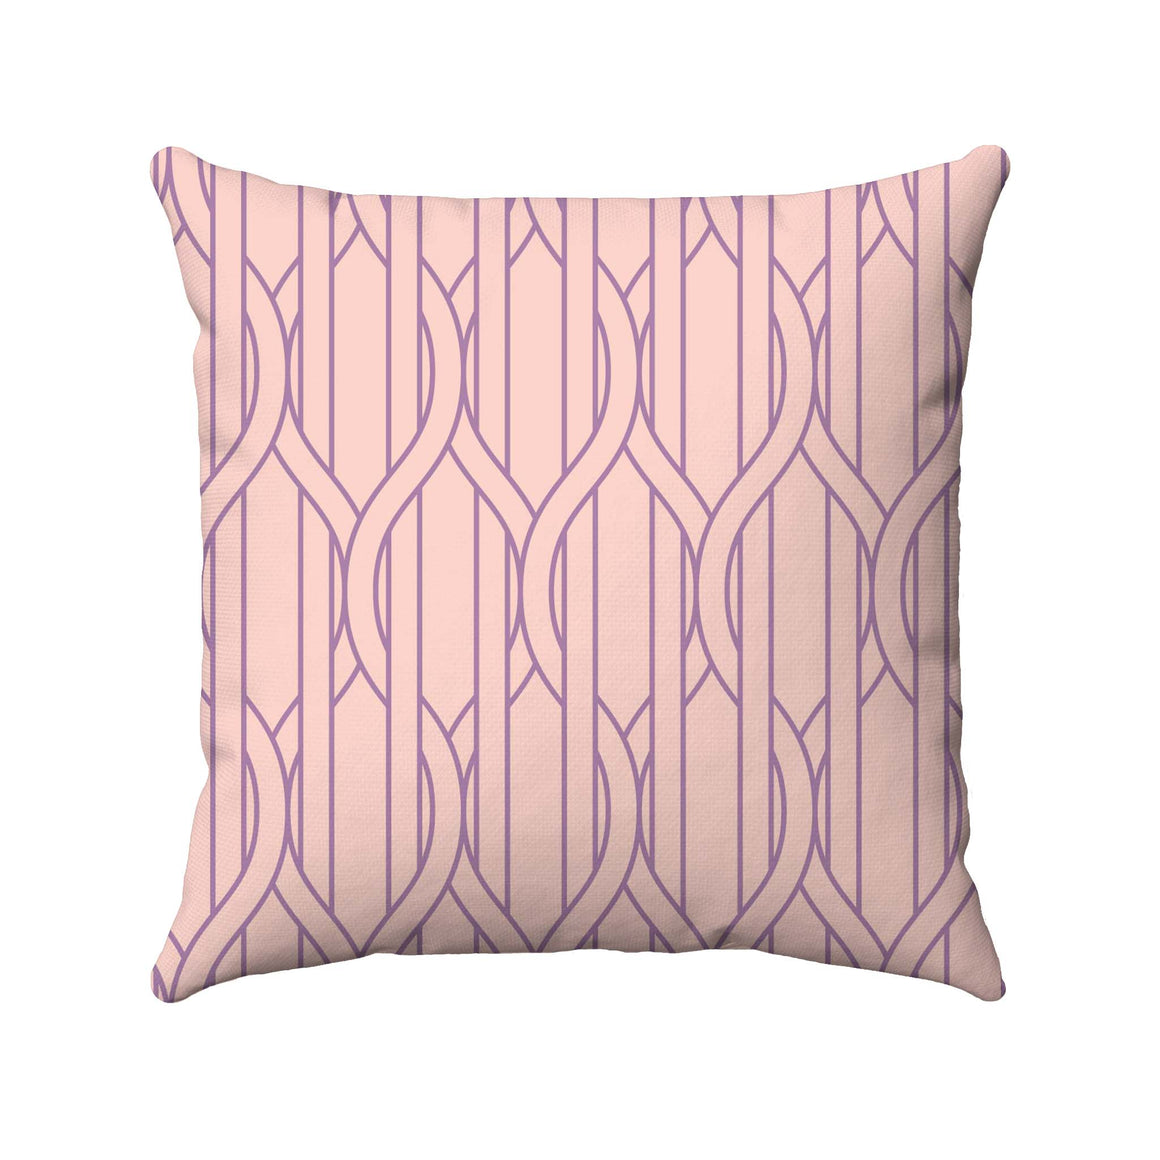 Pale pink and lavendar straight and ogee lines are used in this 2-color design to portray vertical stripes with wire-like lines wrapping in and around the stripes.